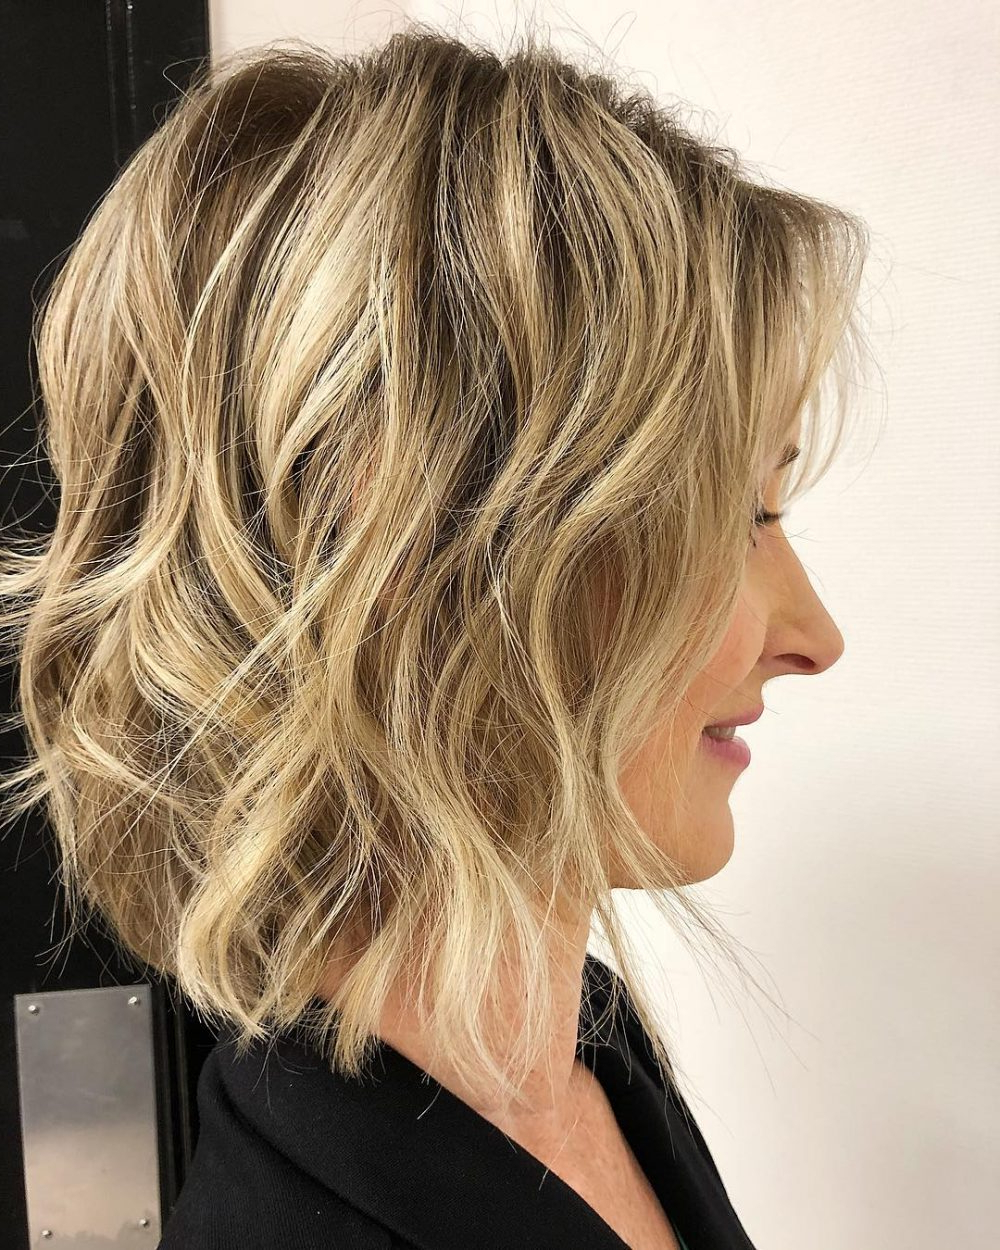 43 Perfect Short Hairstyles For Fine Hair In 2018 In Feathered Pixie Hairstyles For Thin Hair (View 6 of 20)